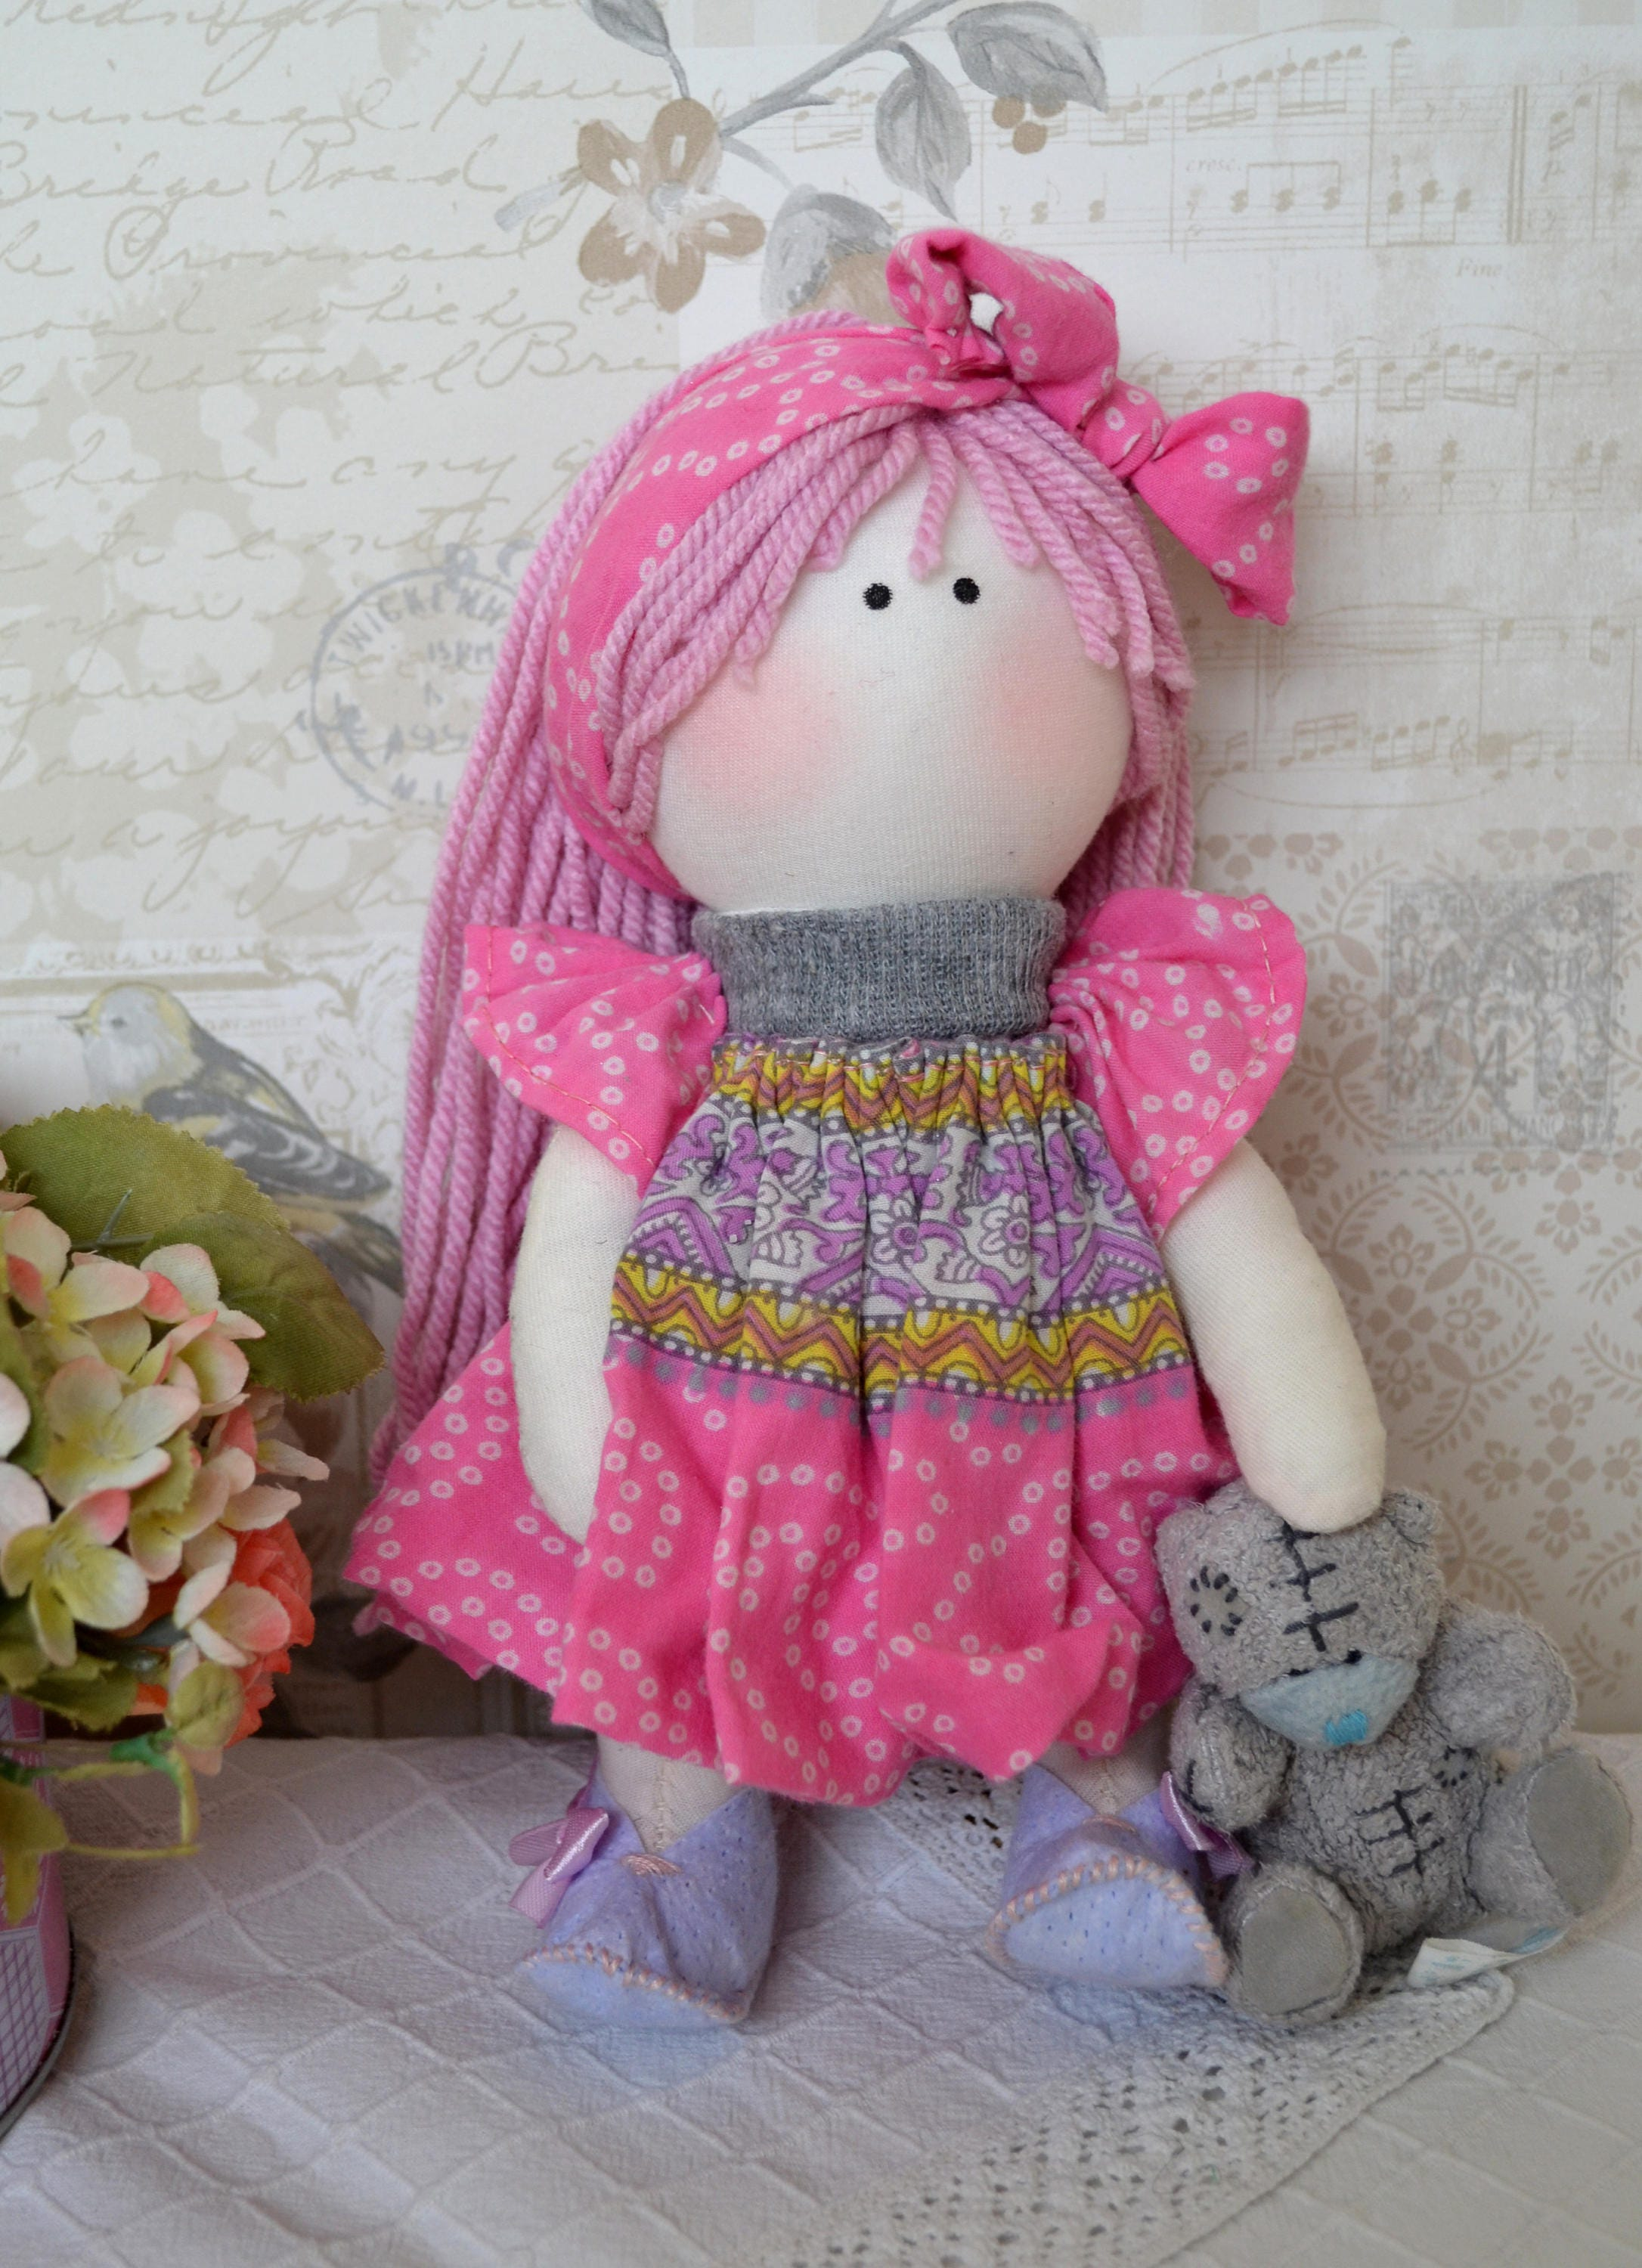 Lily Handmade collectable Lindy doll toy Russian dolls hand stitched personalise cloth craft